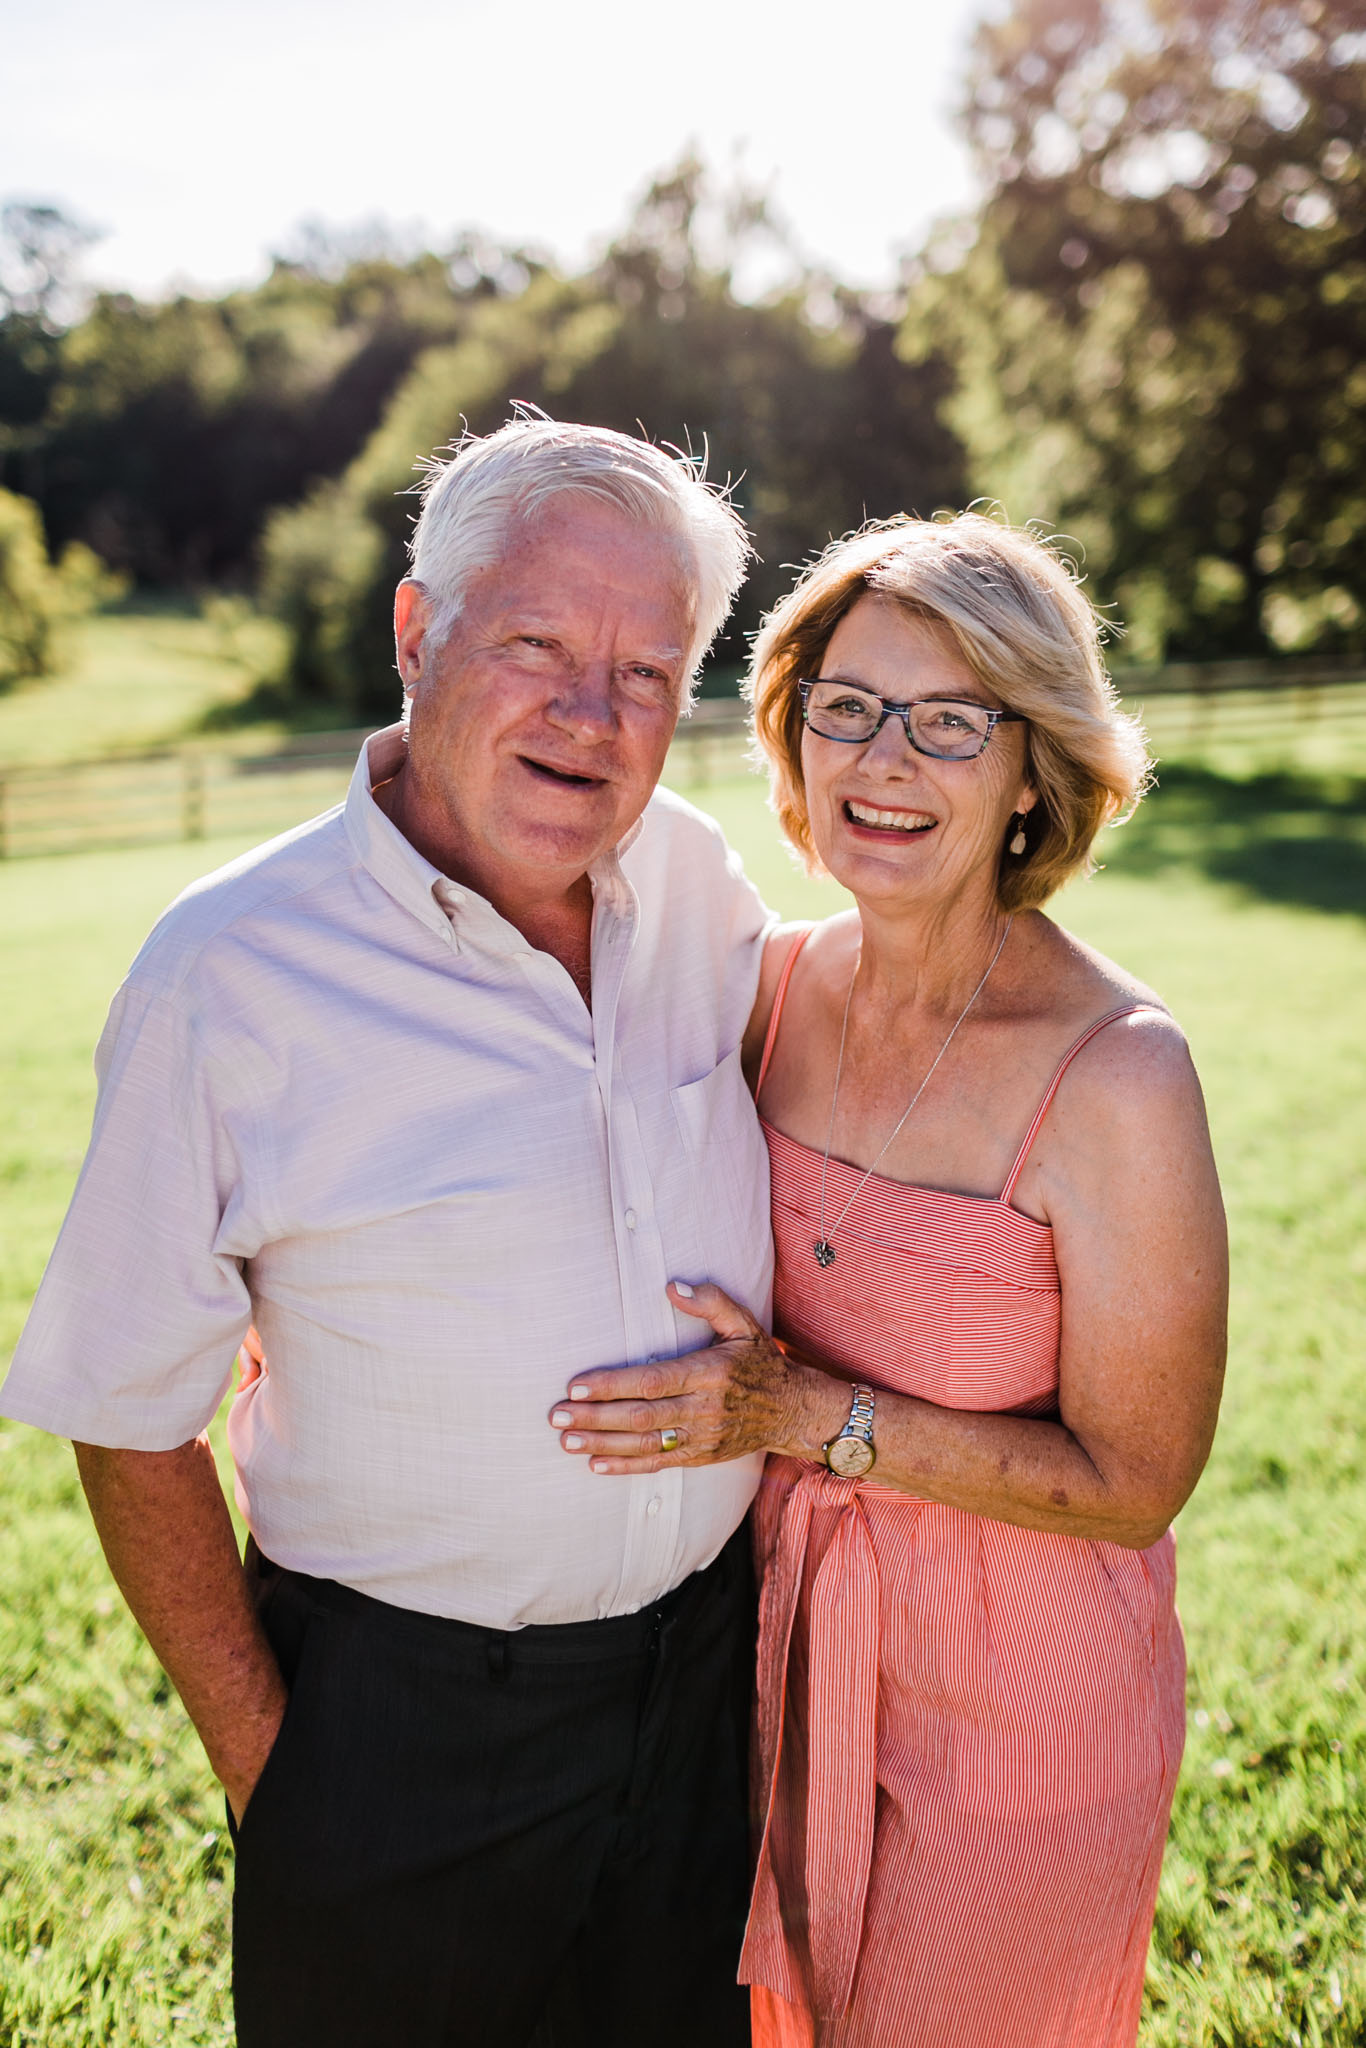 Durham Family Photographer | By G. Lin Photography | Grandparents smiling at camera